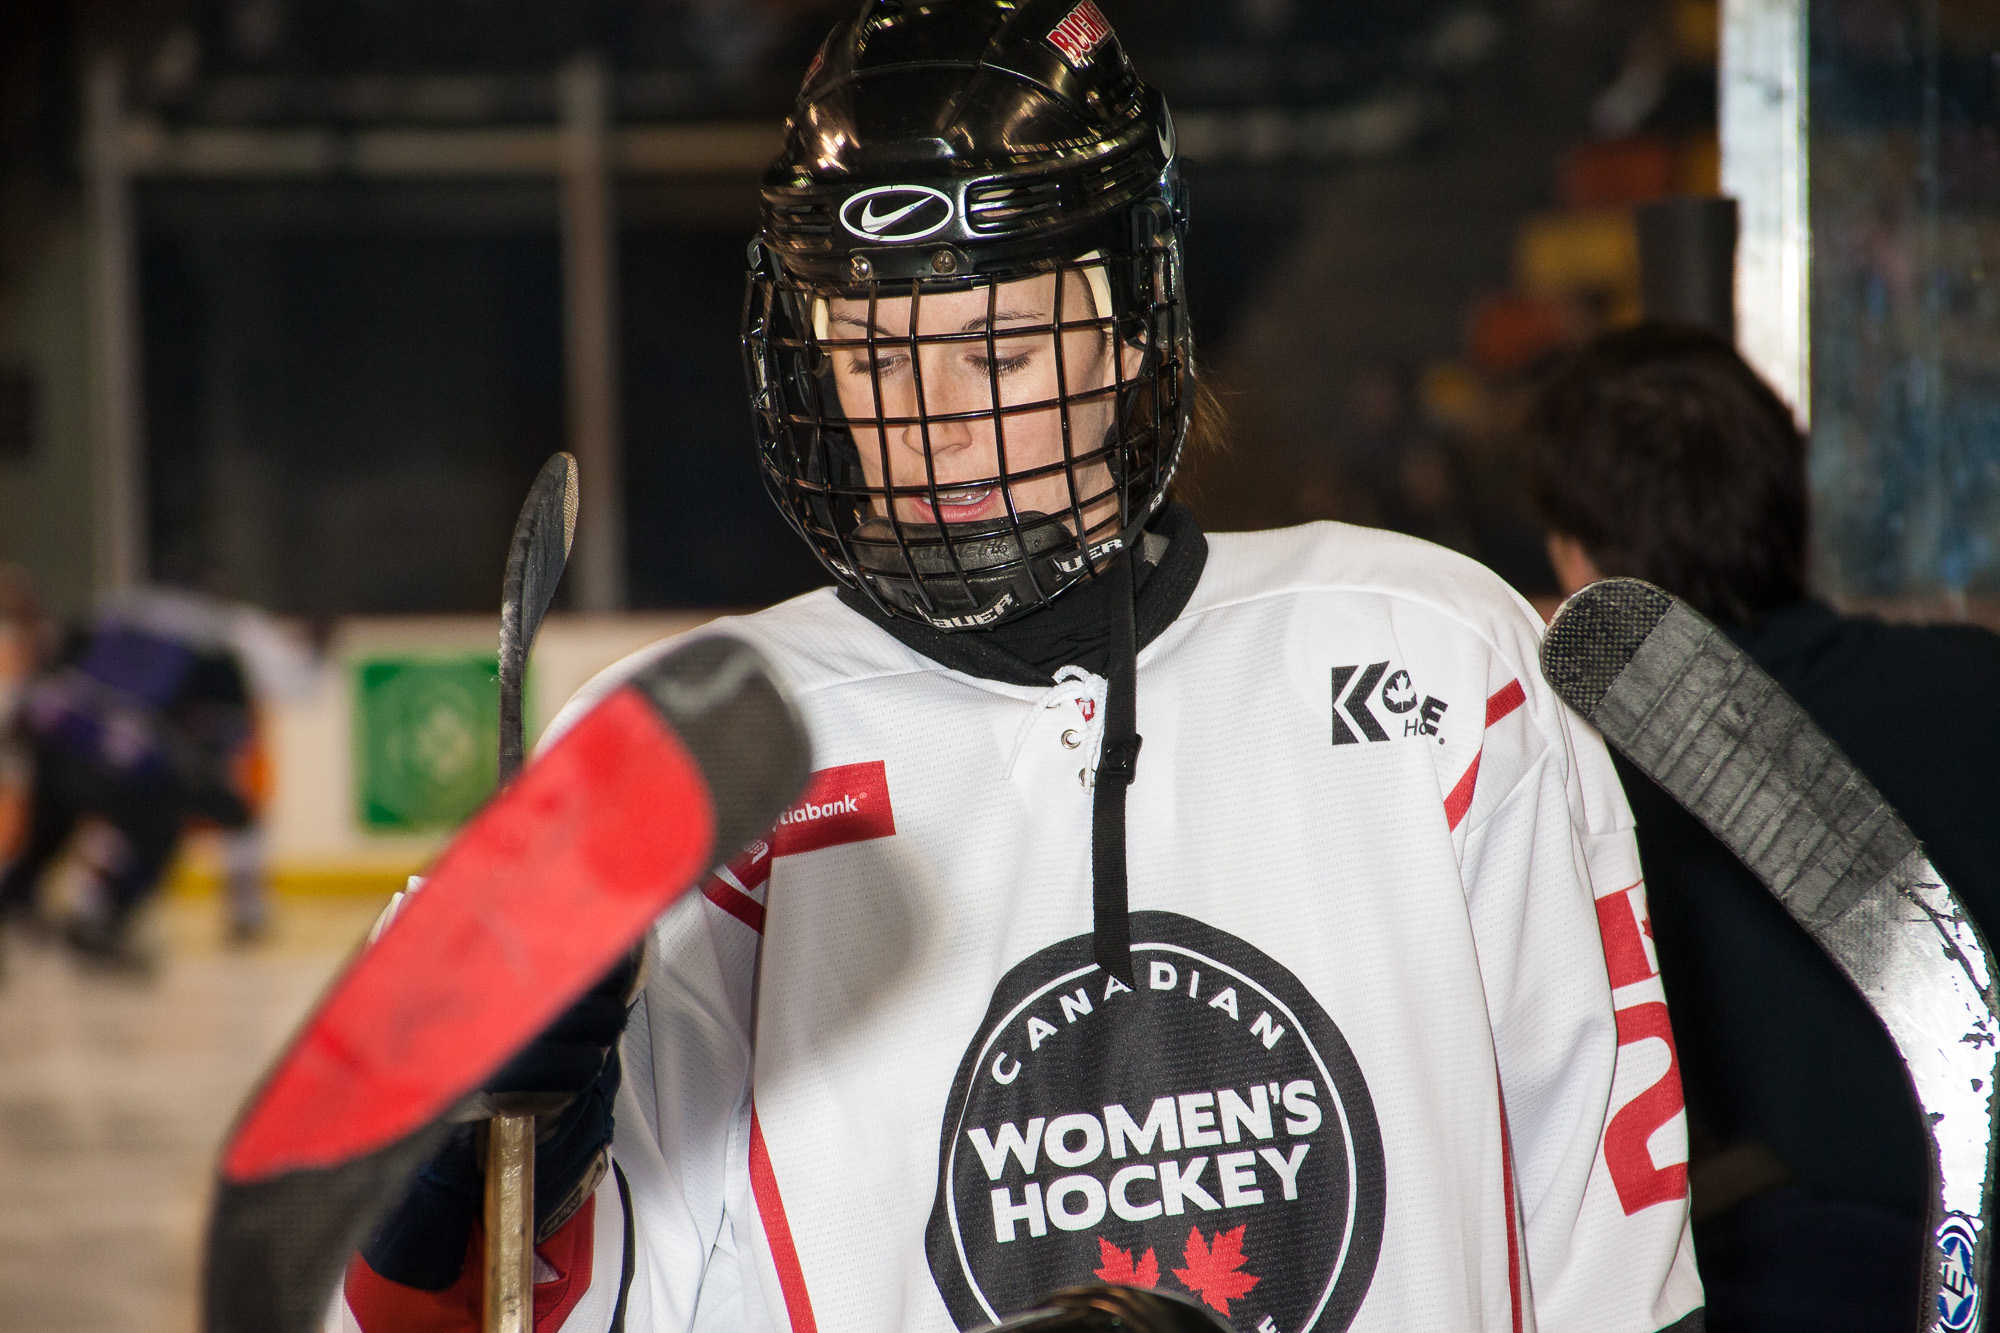 CWHL Player Returning to Game